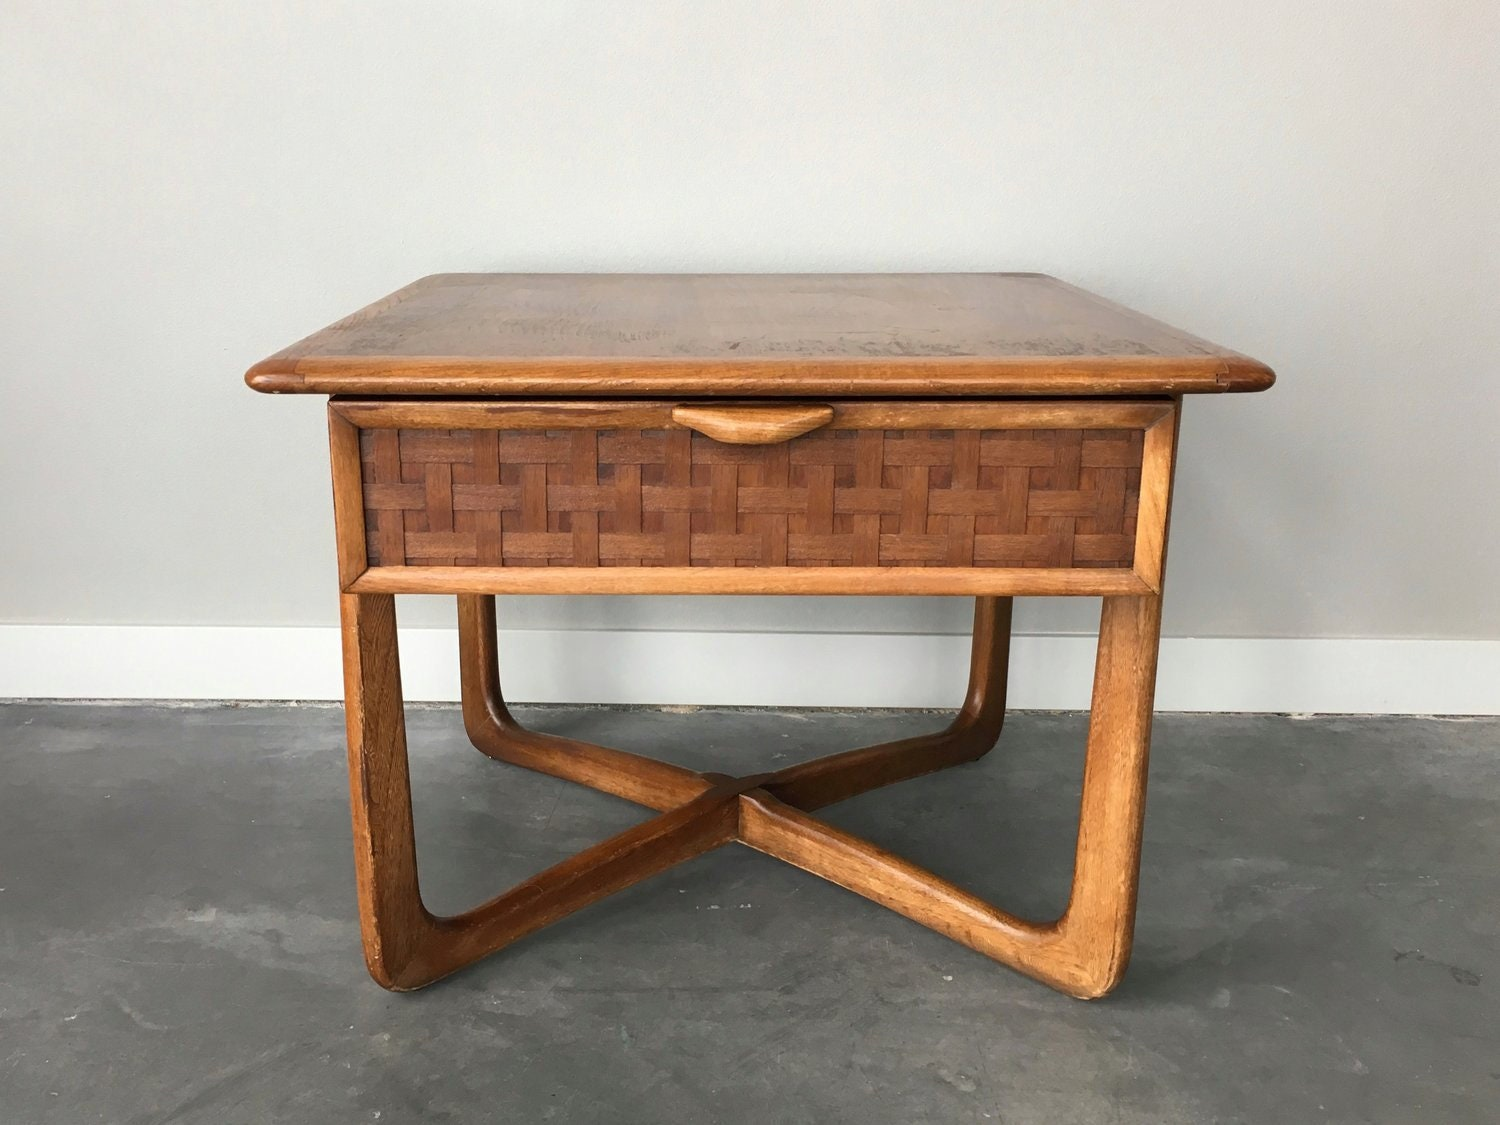 Vintage Mid Century Modern Lane Perception Square Side Table 60s End Table Retro Boho Tiki Furniture Woven Basket Weave Accent